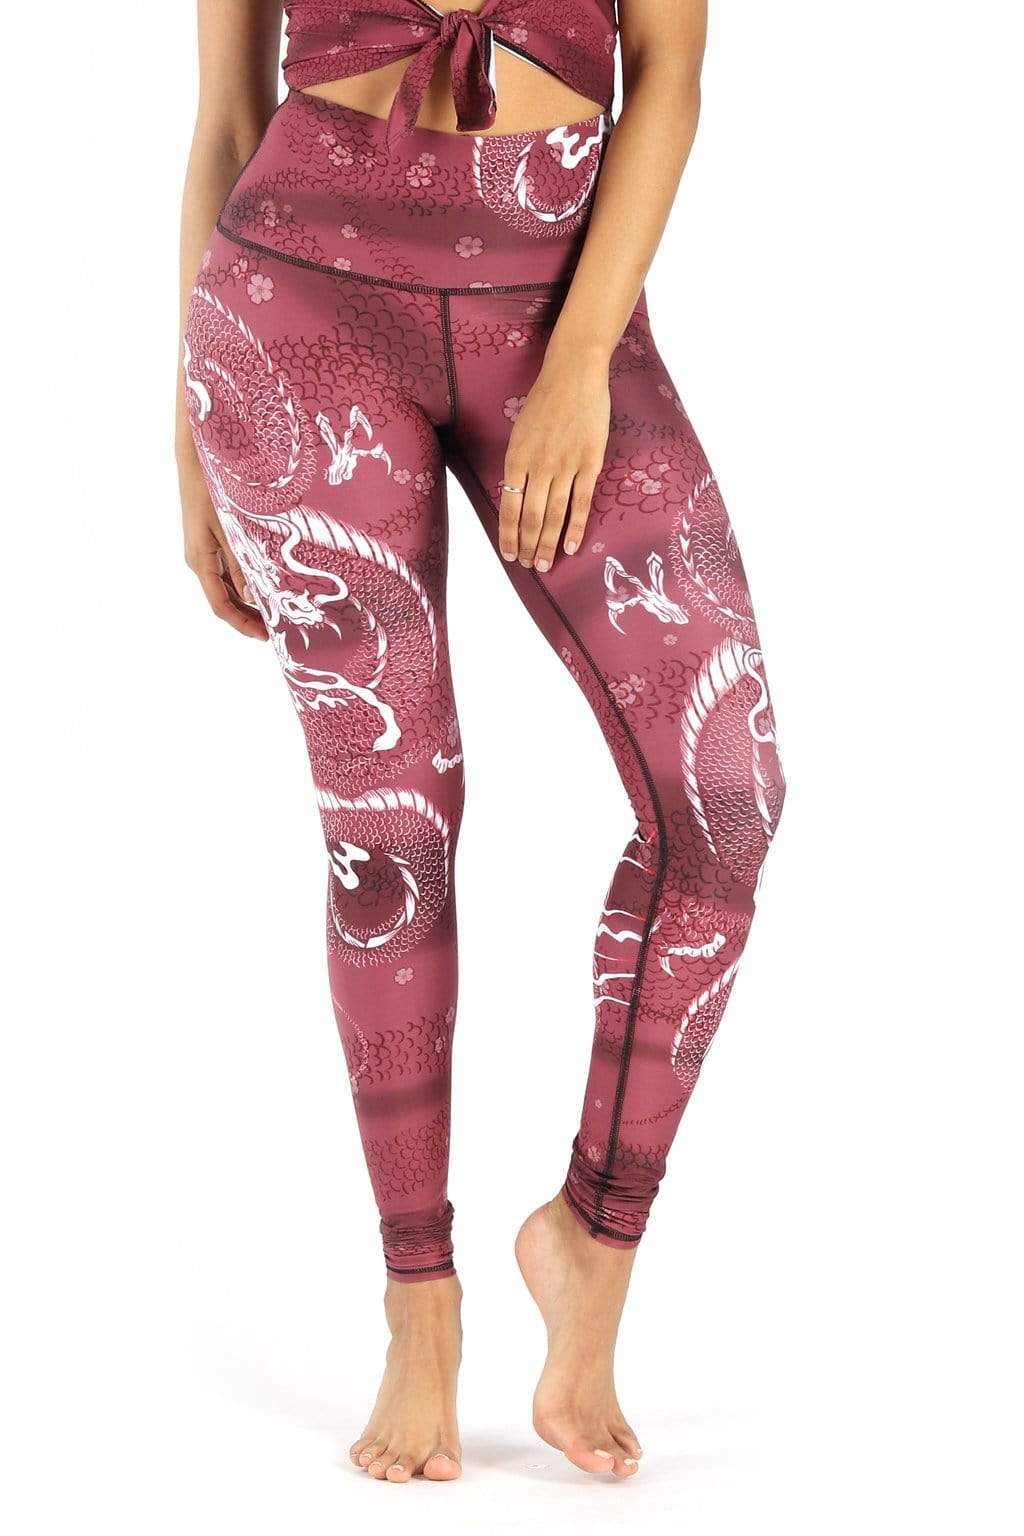 Yoga Democracy Leggings Dragon Goddess Printed Yoga Leggings